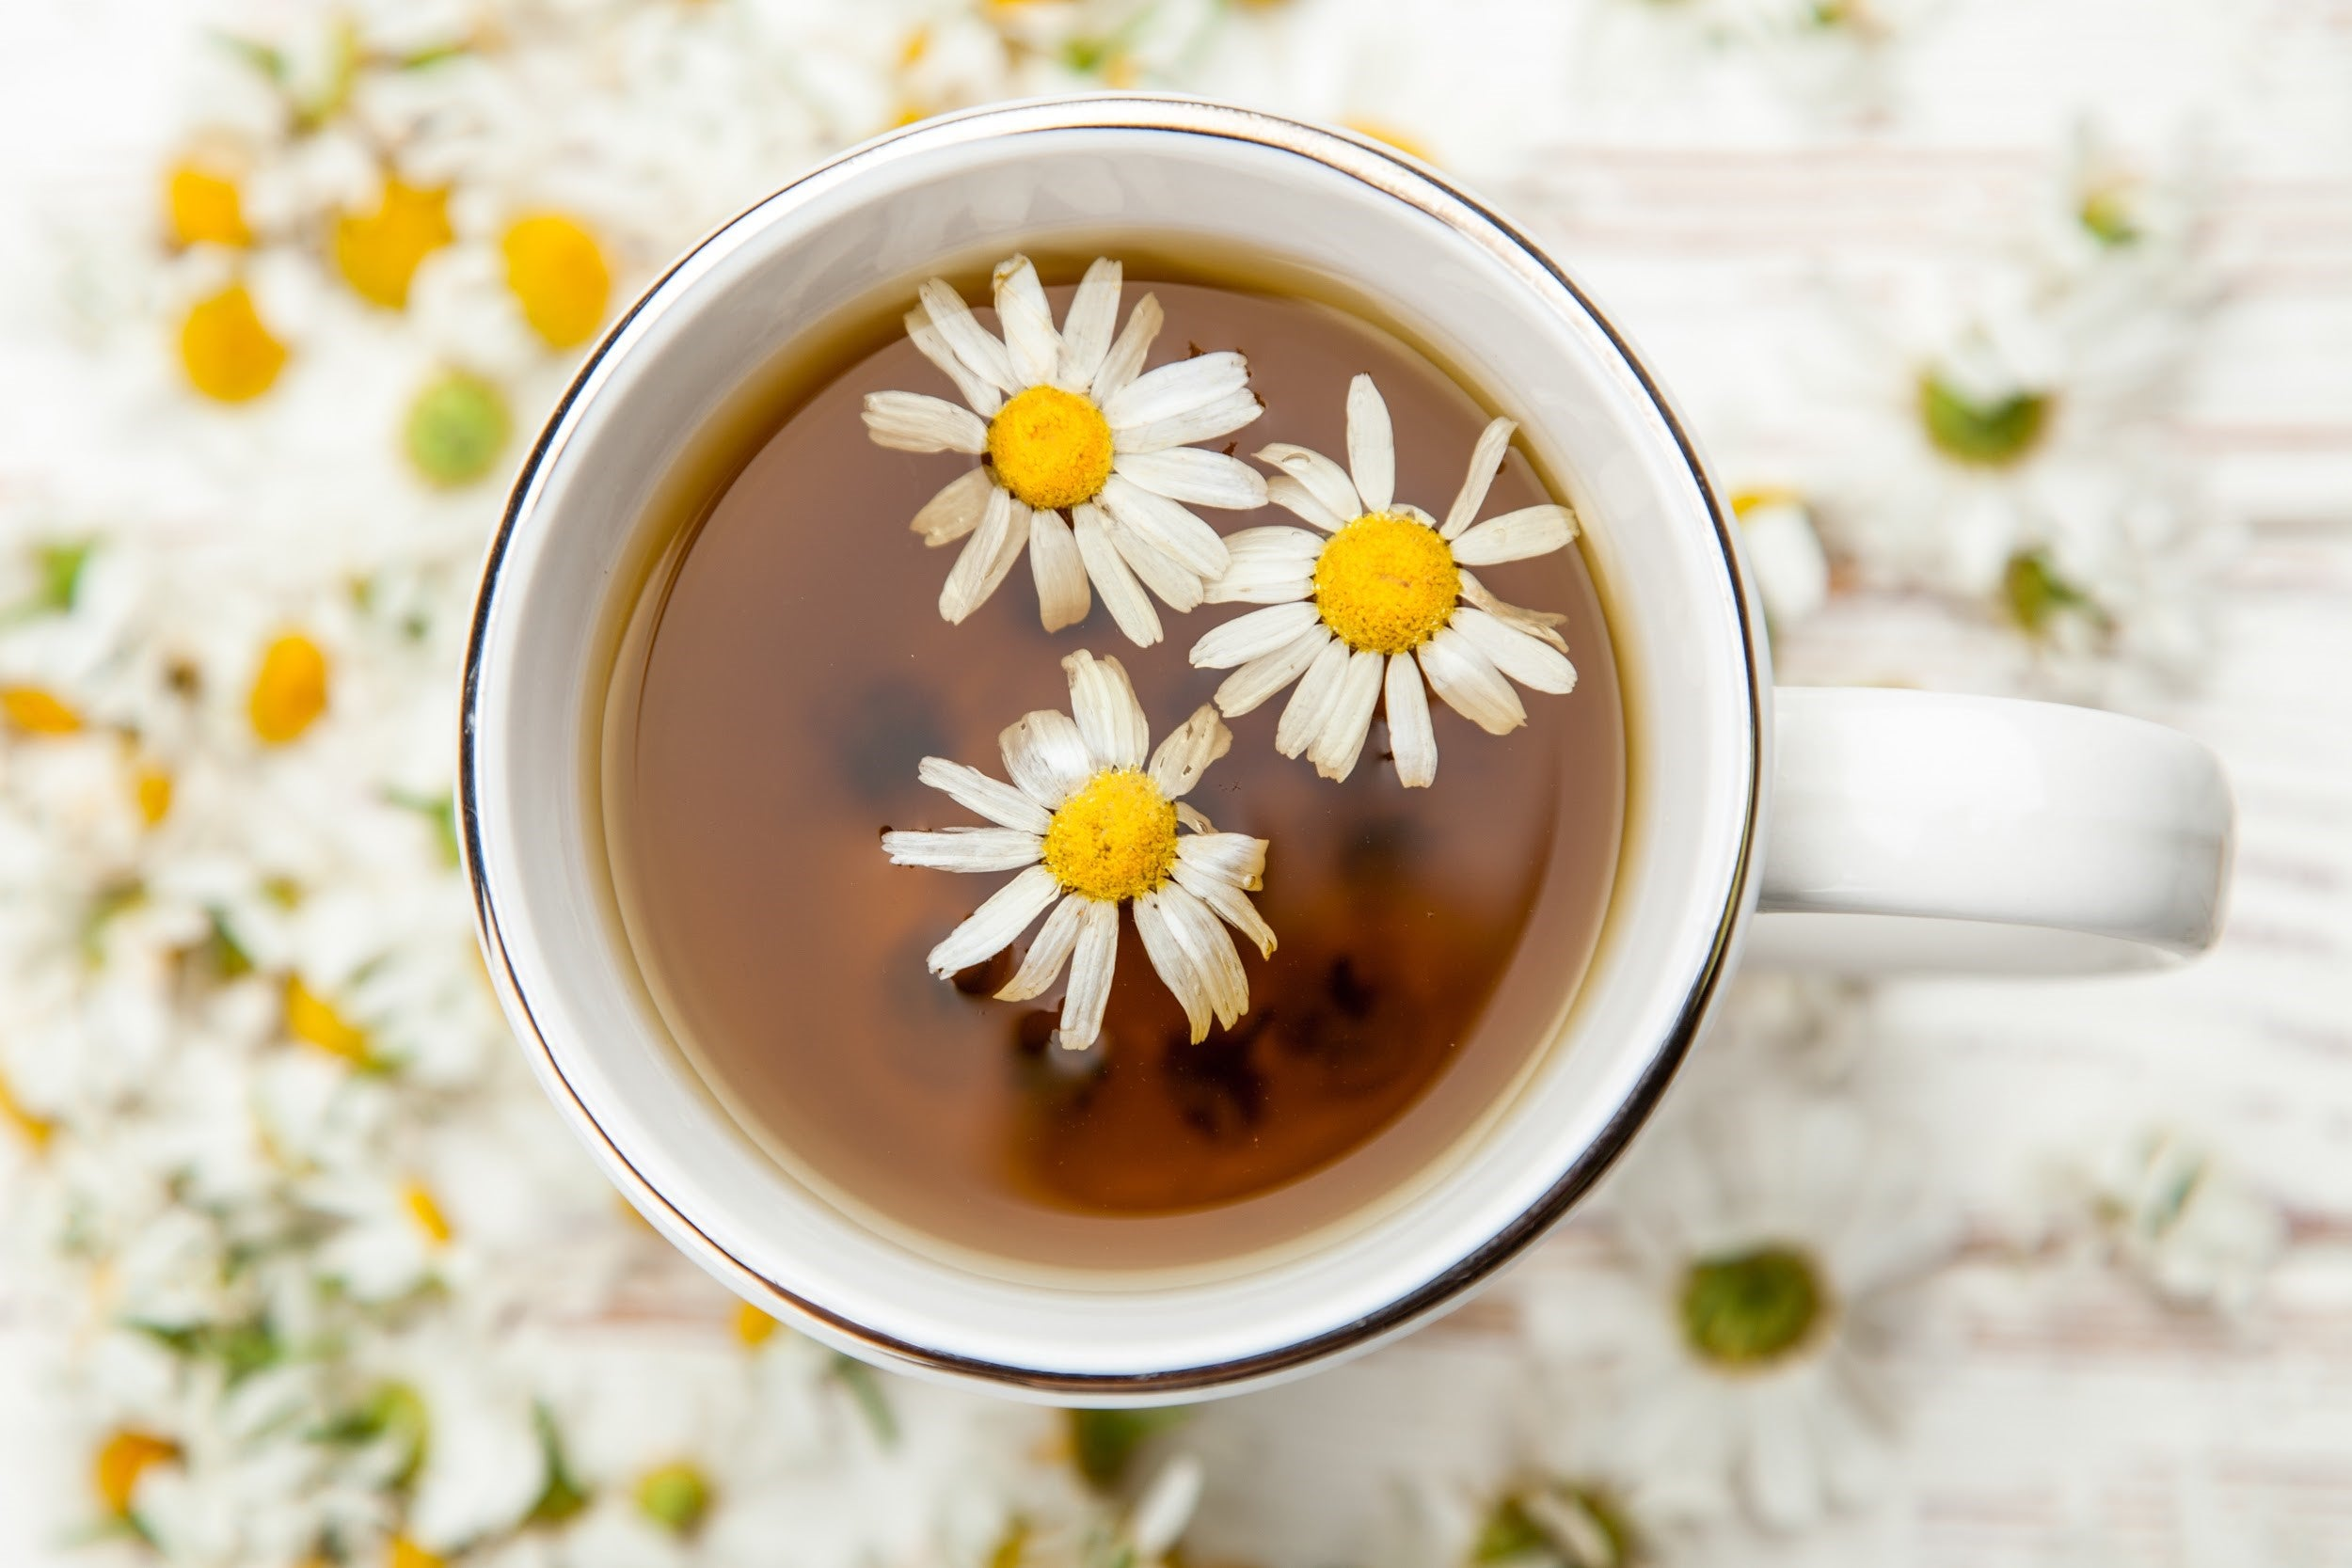 Chamomile to induce sleep